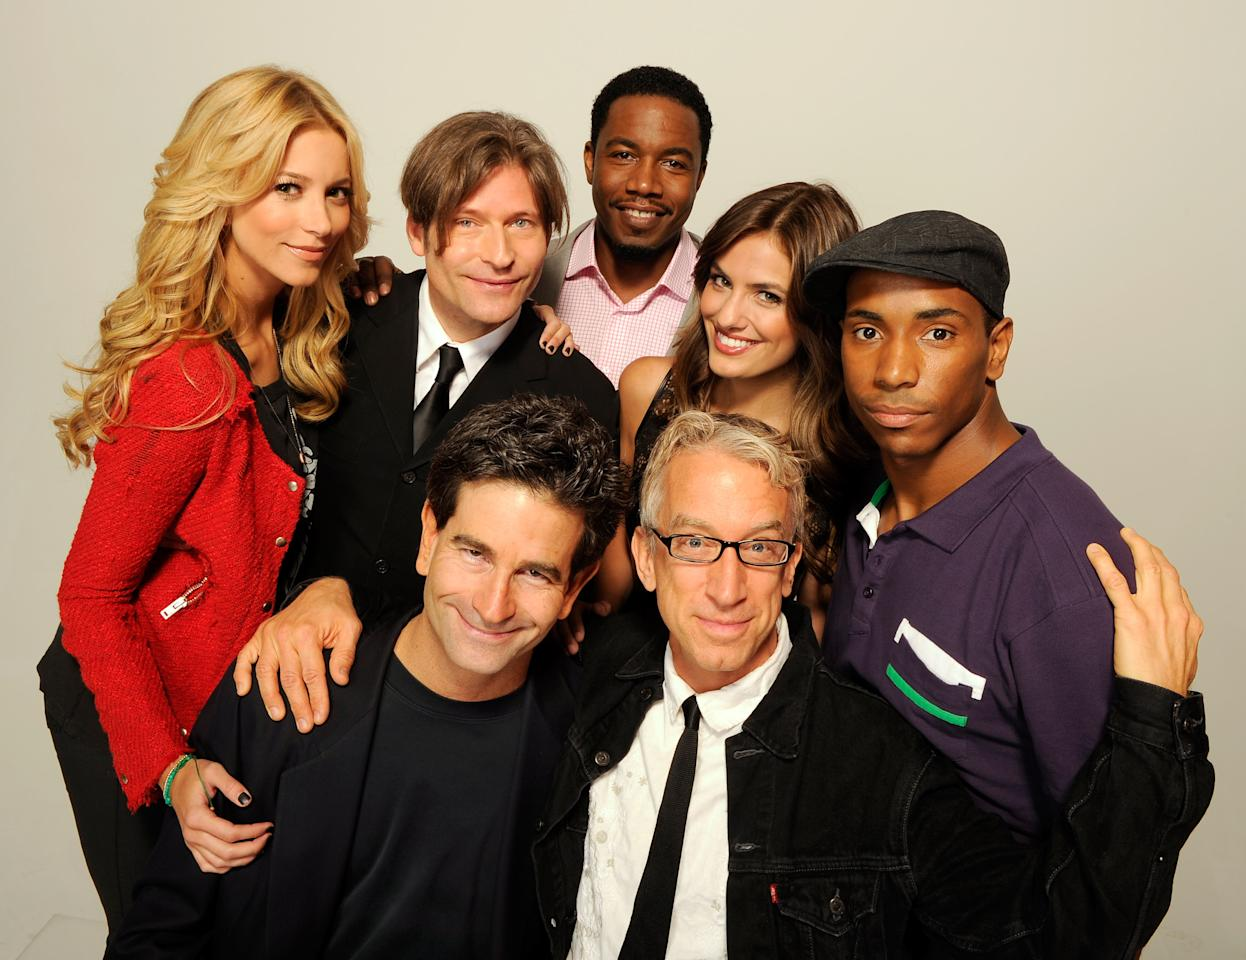 NEW YORK, NY - APRIL 22:  Actress Sabina Gadecki, actor Crispin Glover, writer/director Charles Matthau, actor Michael Jai White, actor Andy Dick, actress Breanne Racano and actor Leonard Robinson of the film 'Freaky Deaky' visits the Tribeca Film Festival 2012 portrait studio at the Cadillac Tribeca Press Lounge on April 22, 2012 in New York City.  (Photo by Larry Busacca/Getty Images)